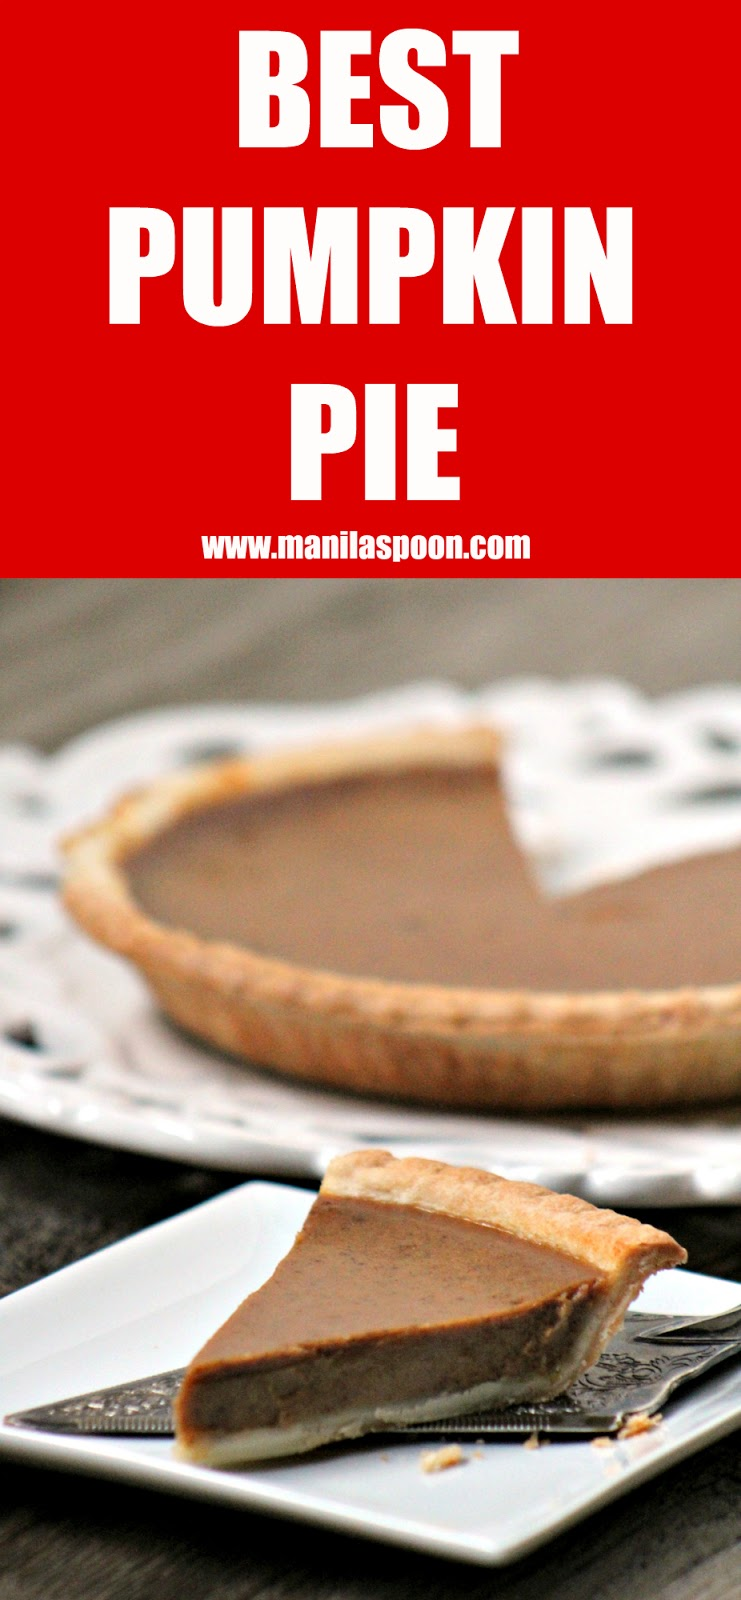 After making this, I will never make pumpkin pie any other way - it's that good! The combination of spices give this pie the most wonderful taste that will truly tickle your taste buds - BEST PUMPKIN PIE RECIPE | Manilaspoon.com